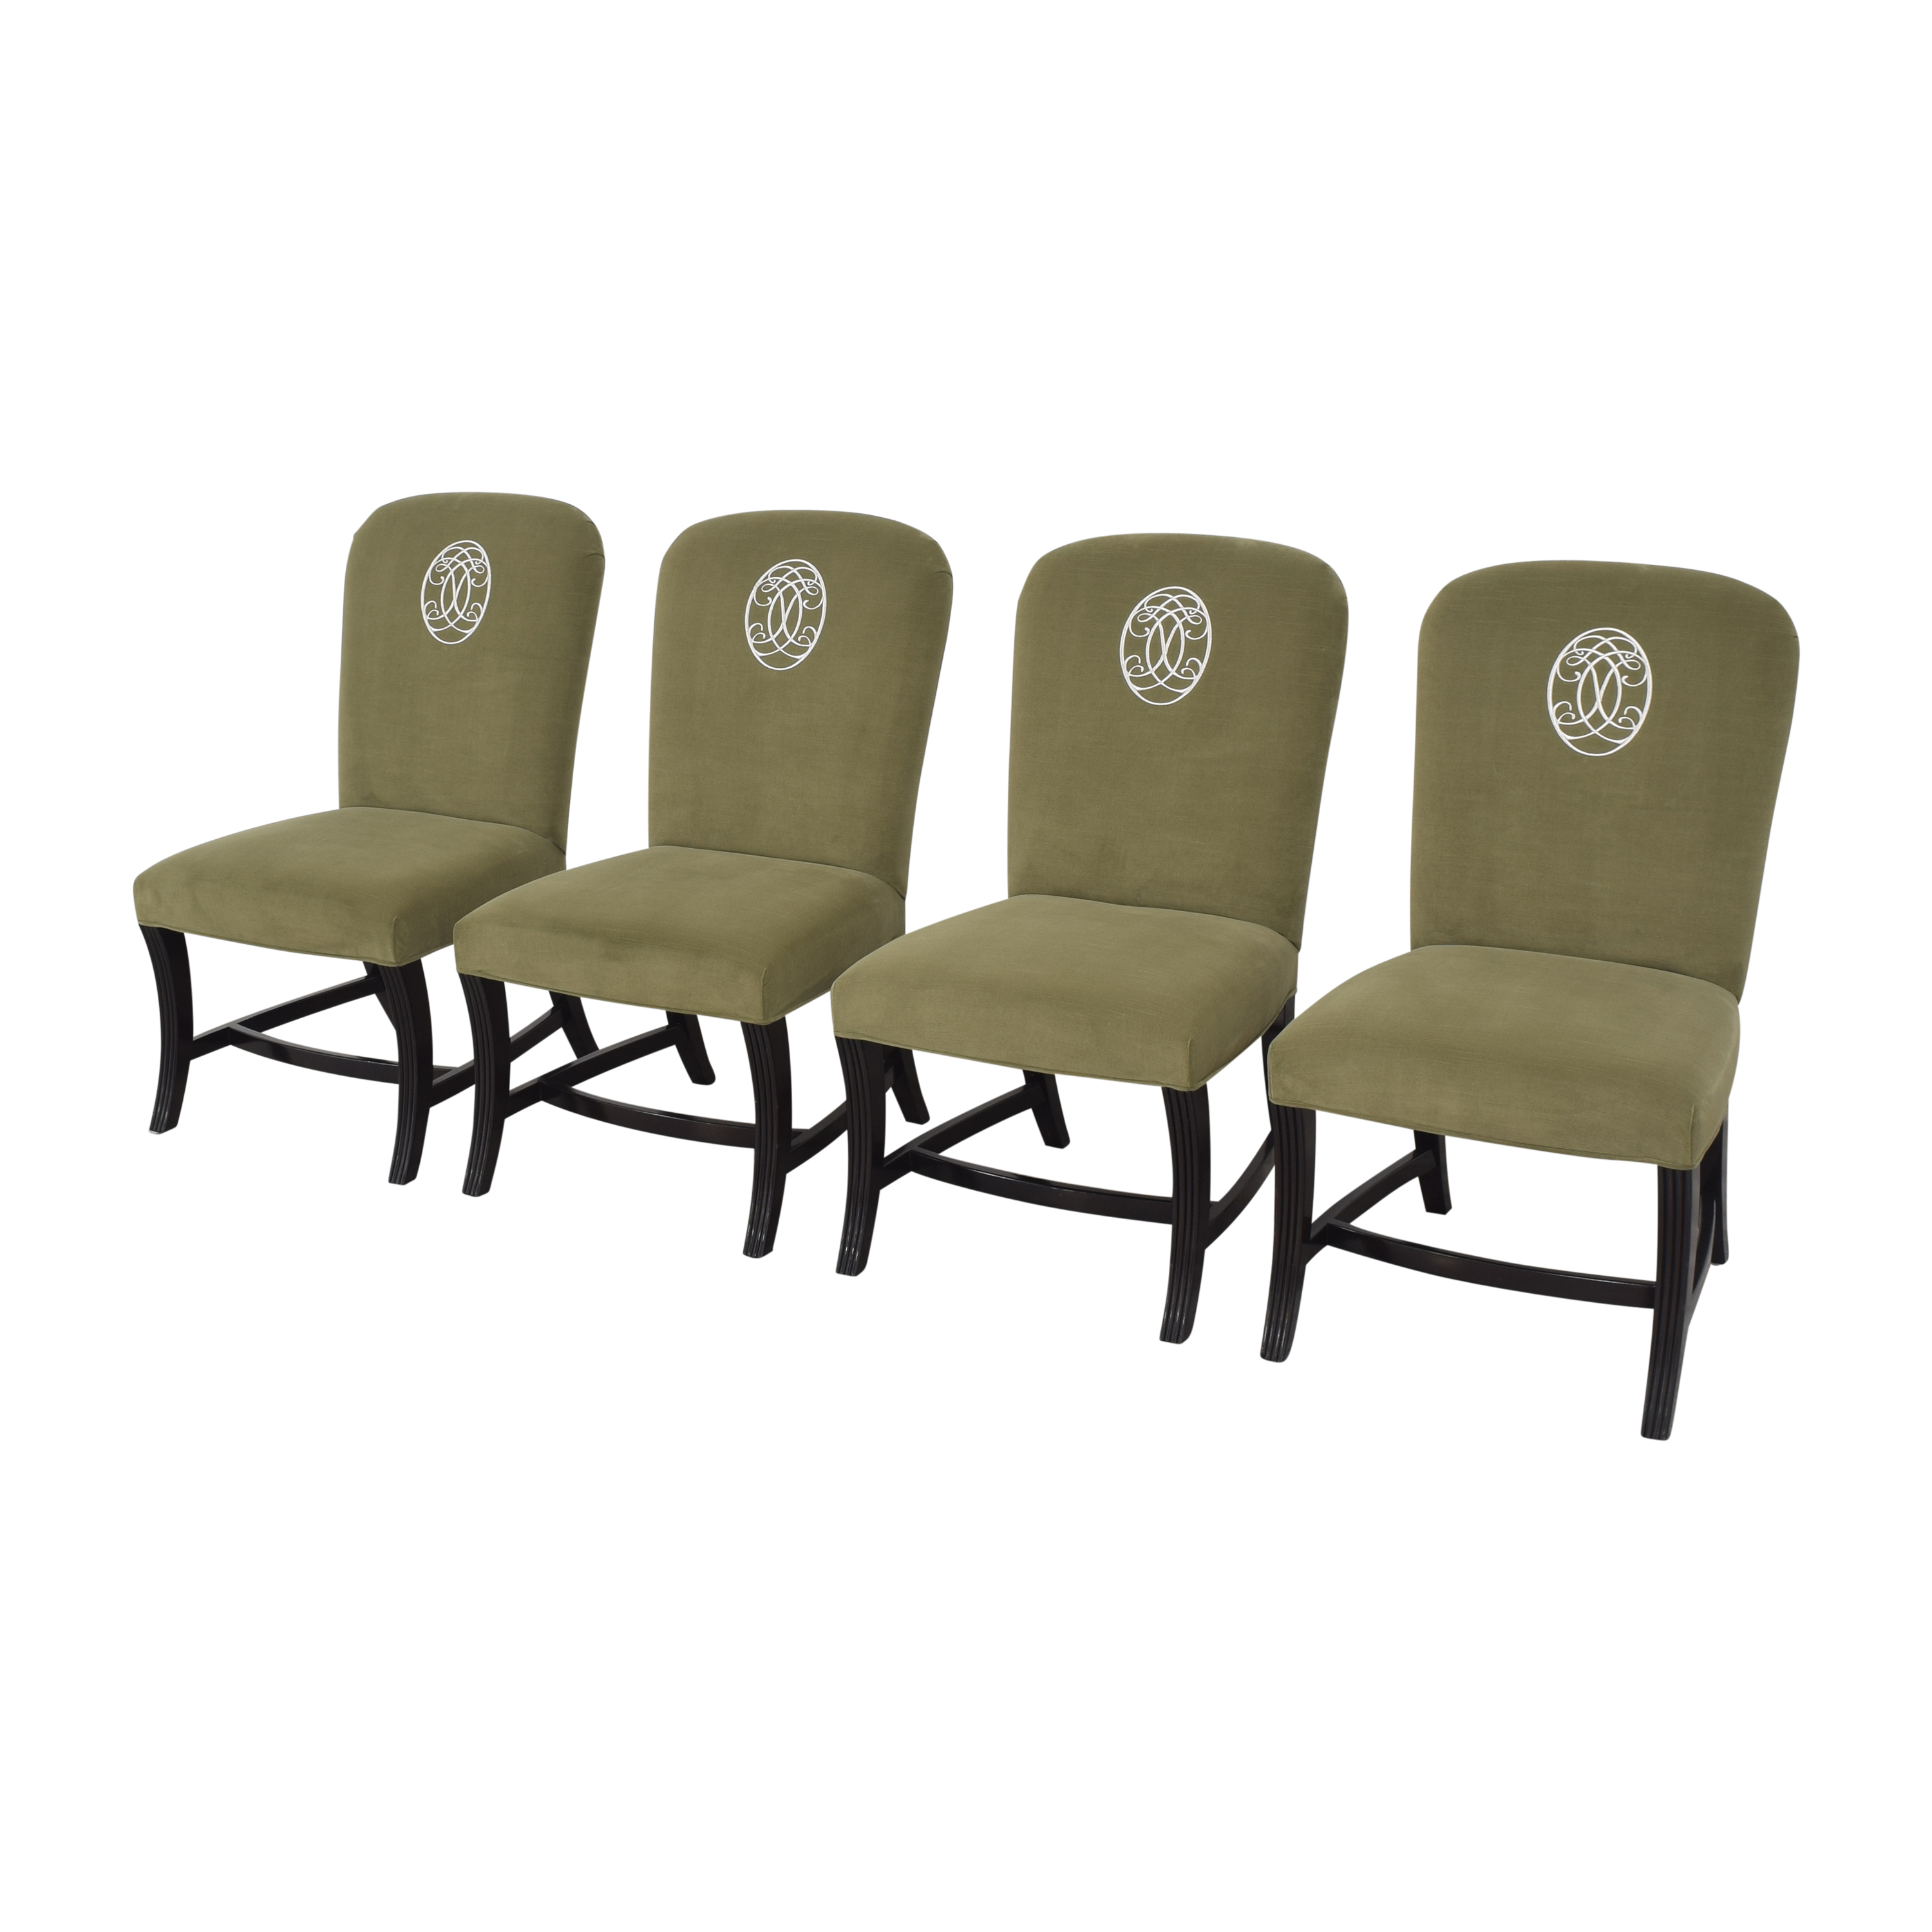 Drexel Heritage Drexel Heritage Upholstered Dining Chairs pa